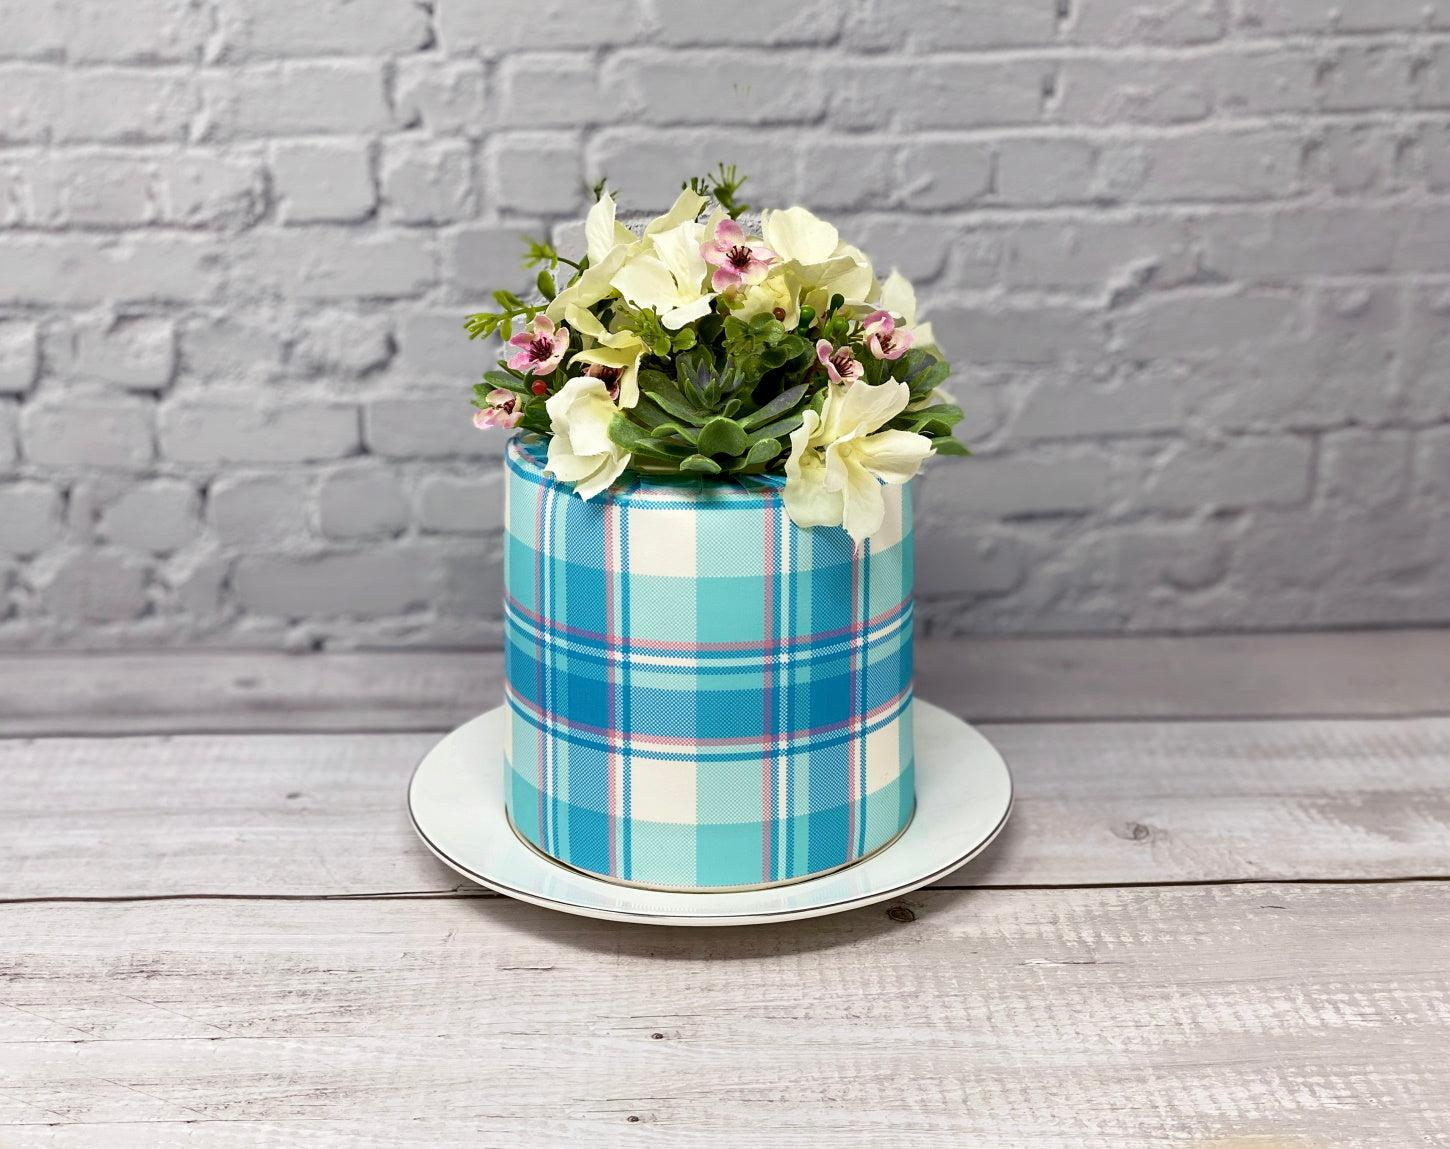 Aqua and pink icing cake wrap with a floral arrangement on top